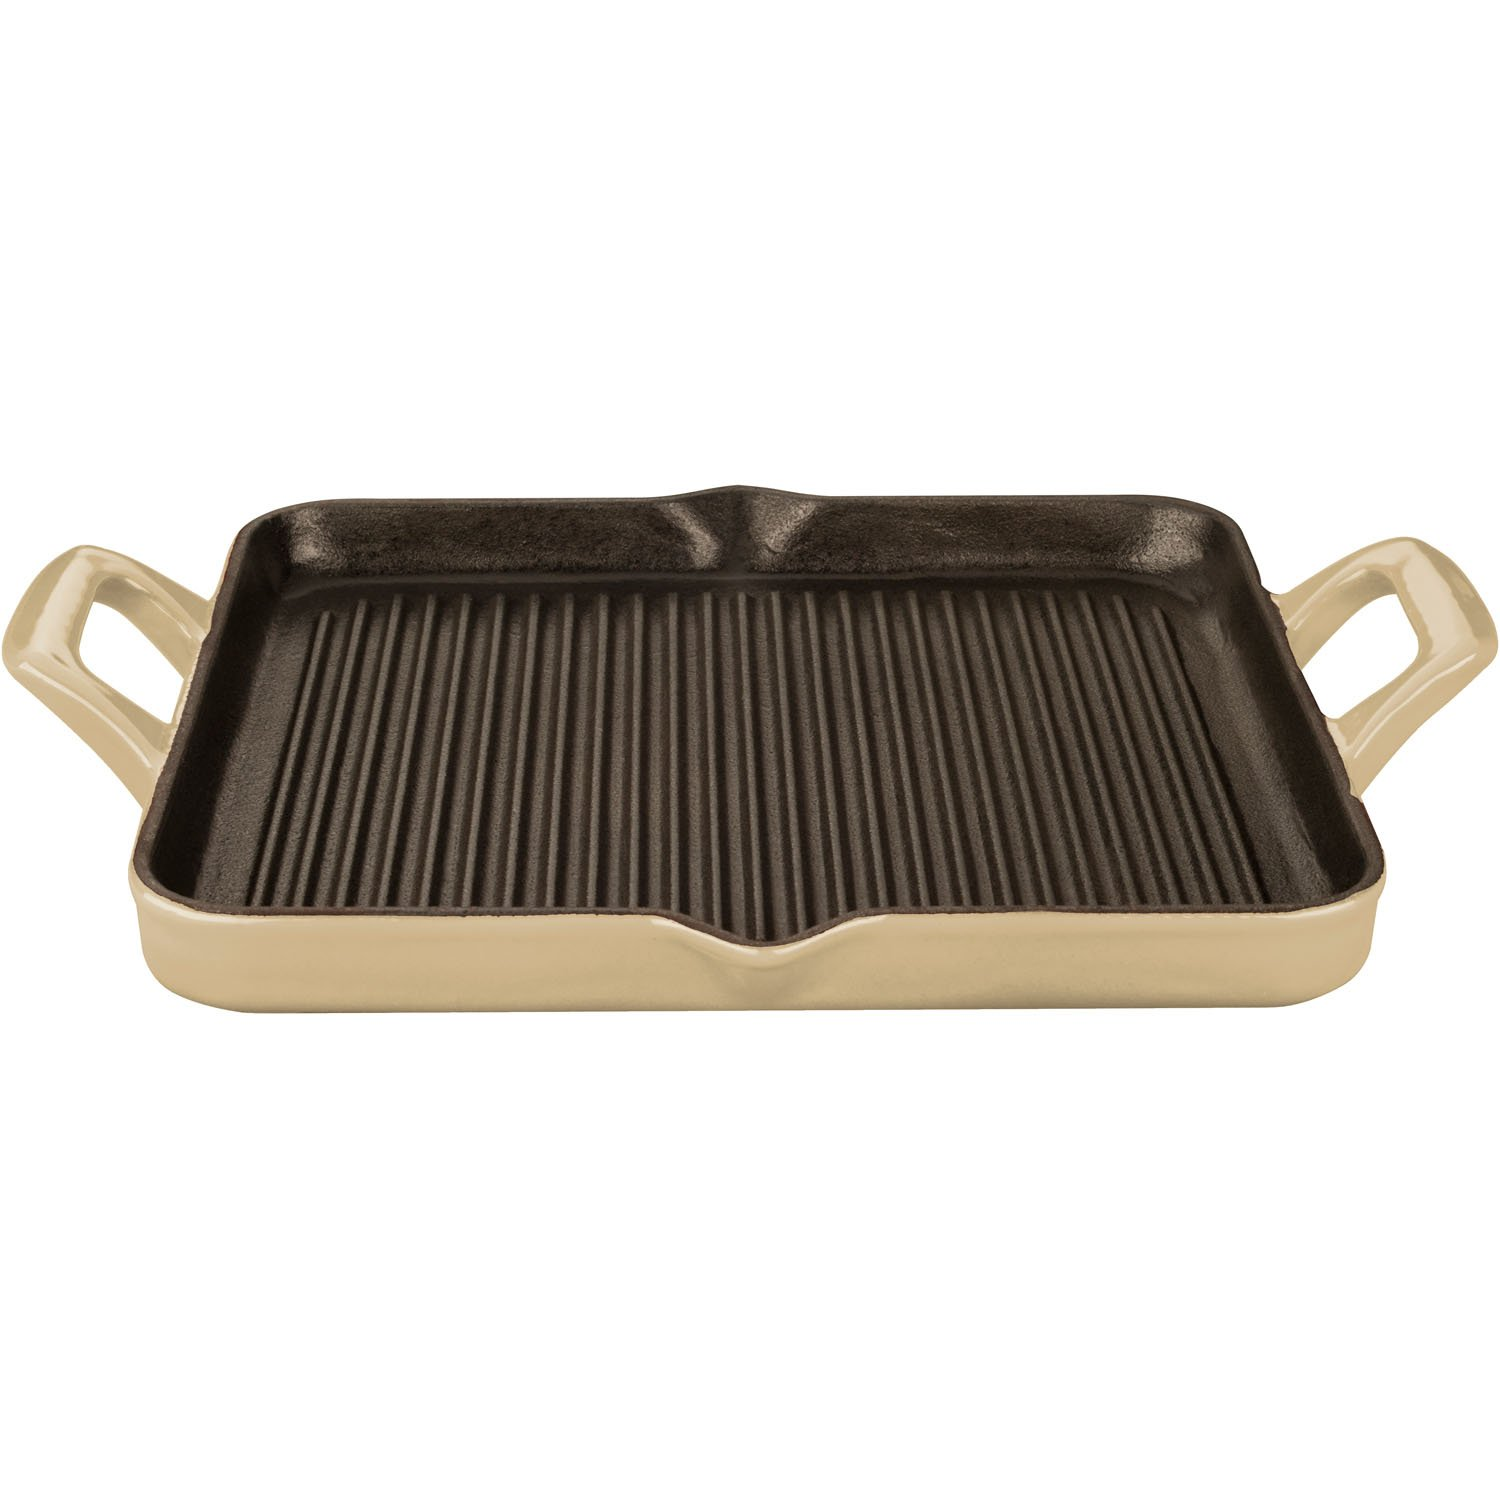 Amazon.com: La Cuisine 1 Qt Rectangular Enameled Cast Iron Grill ...